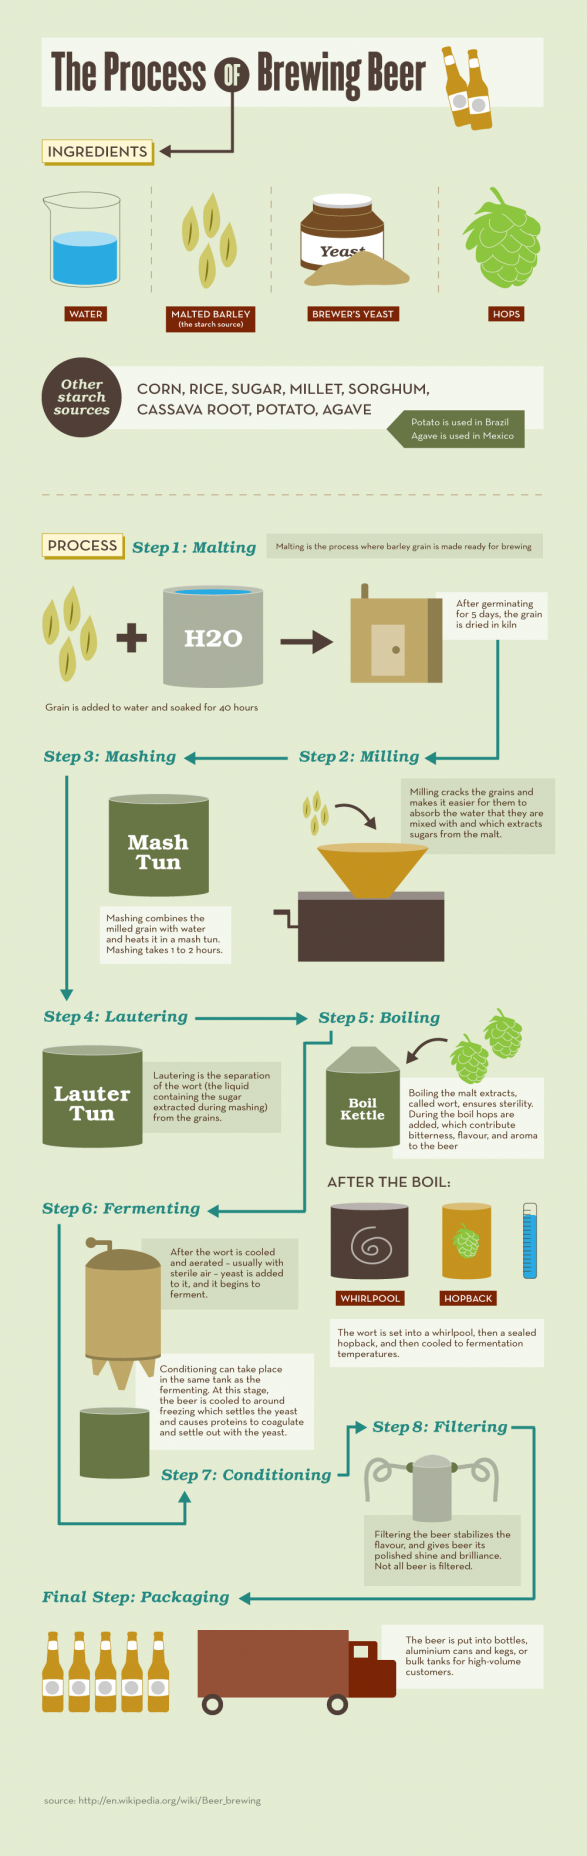 The Process of Brewing Beer